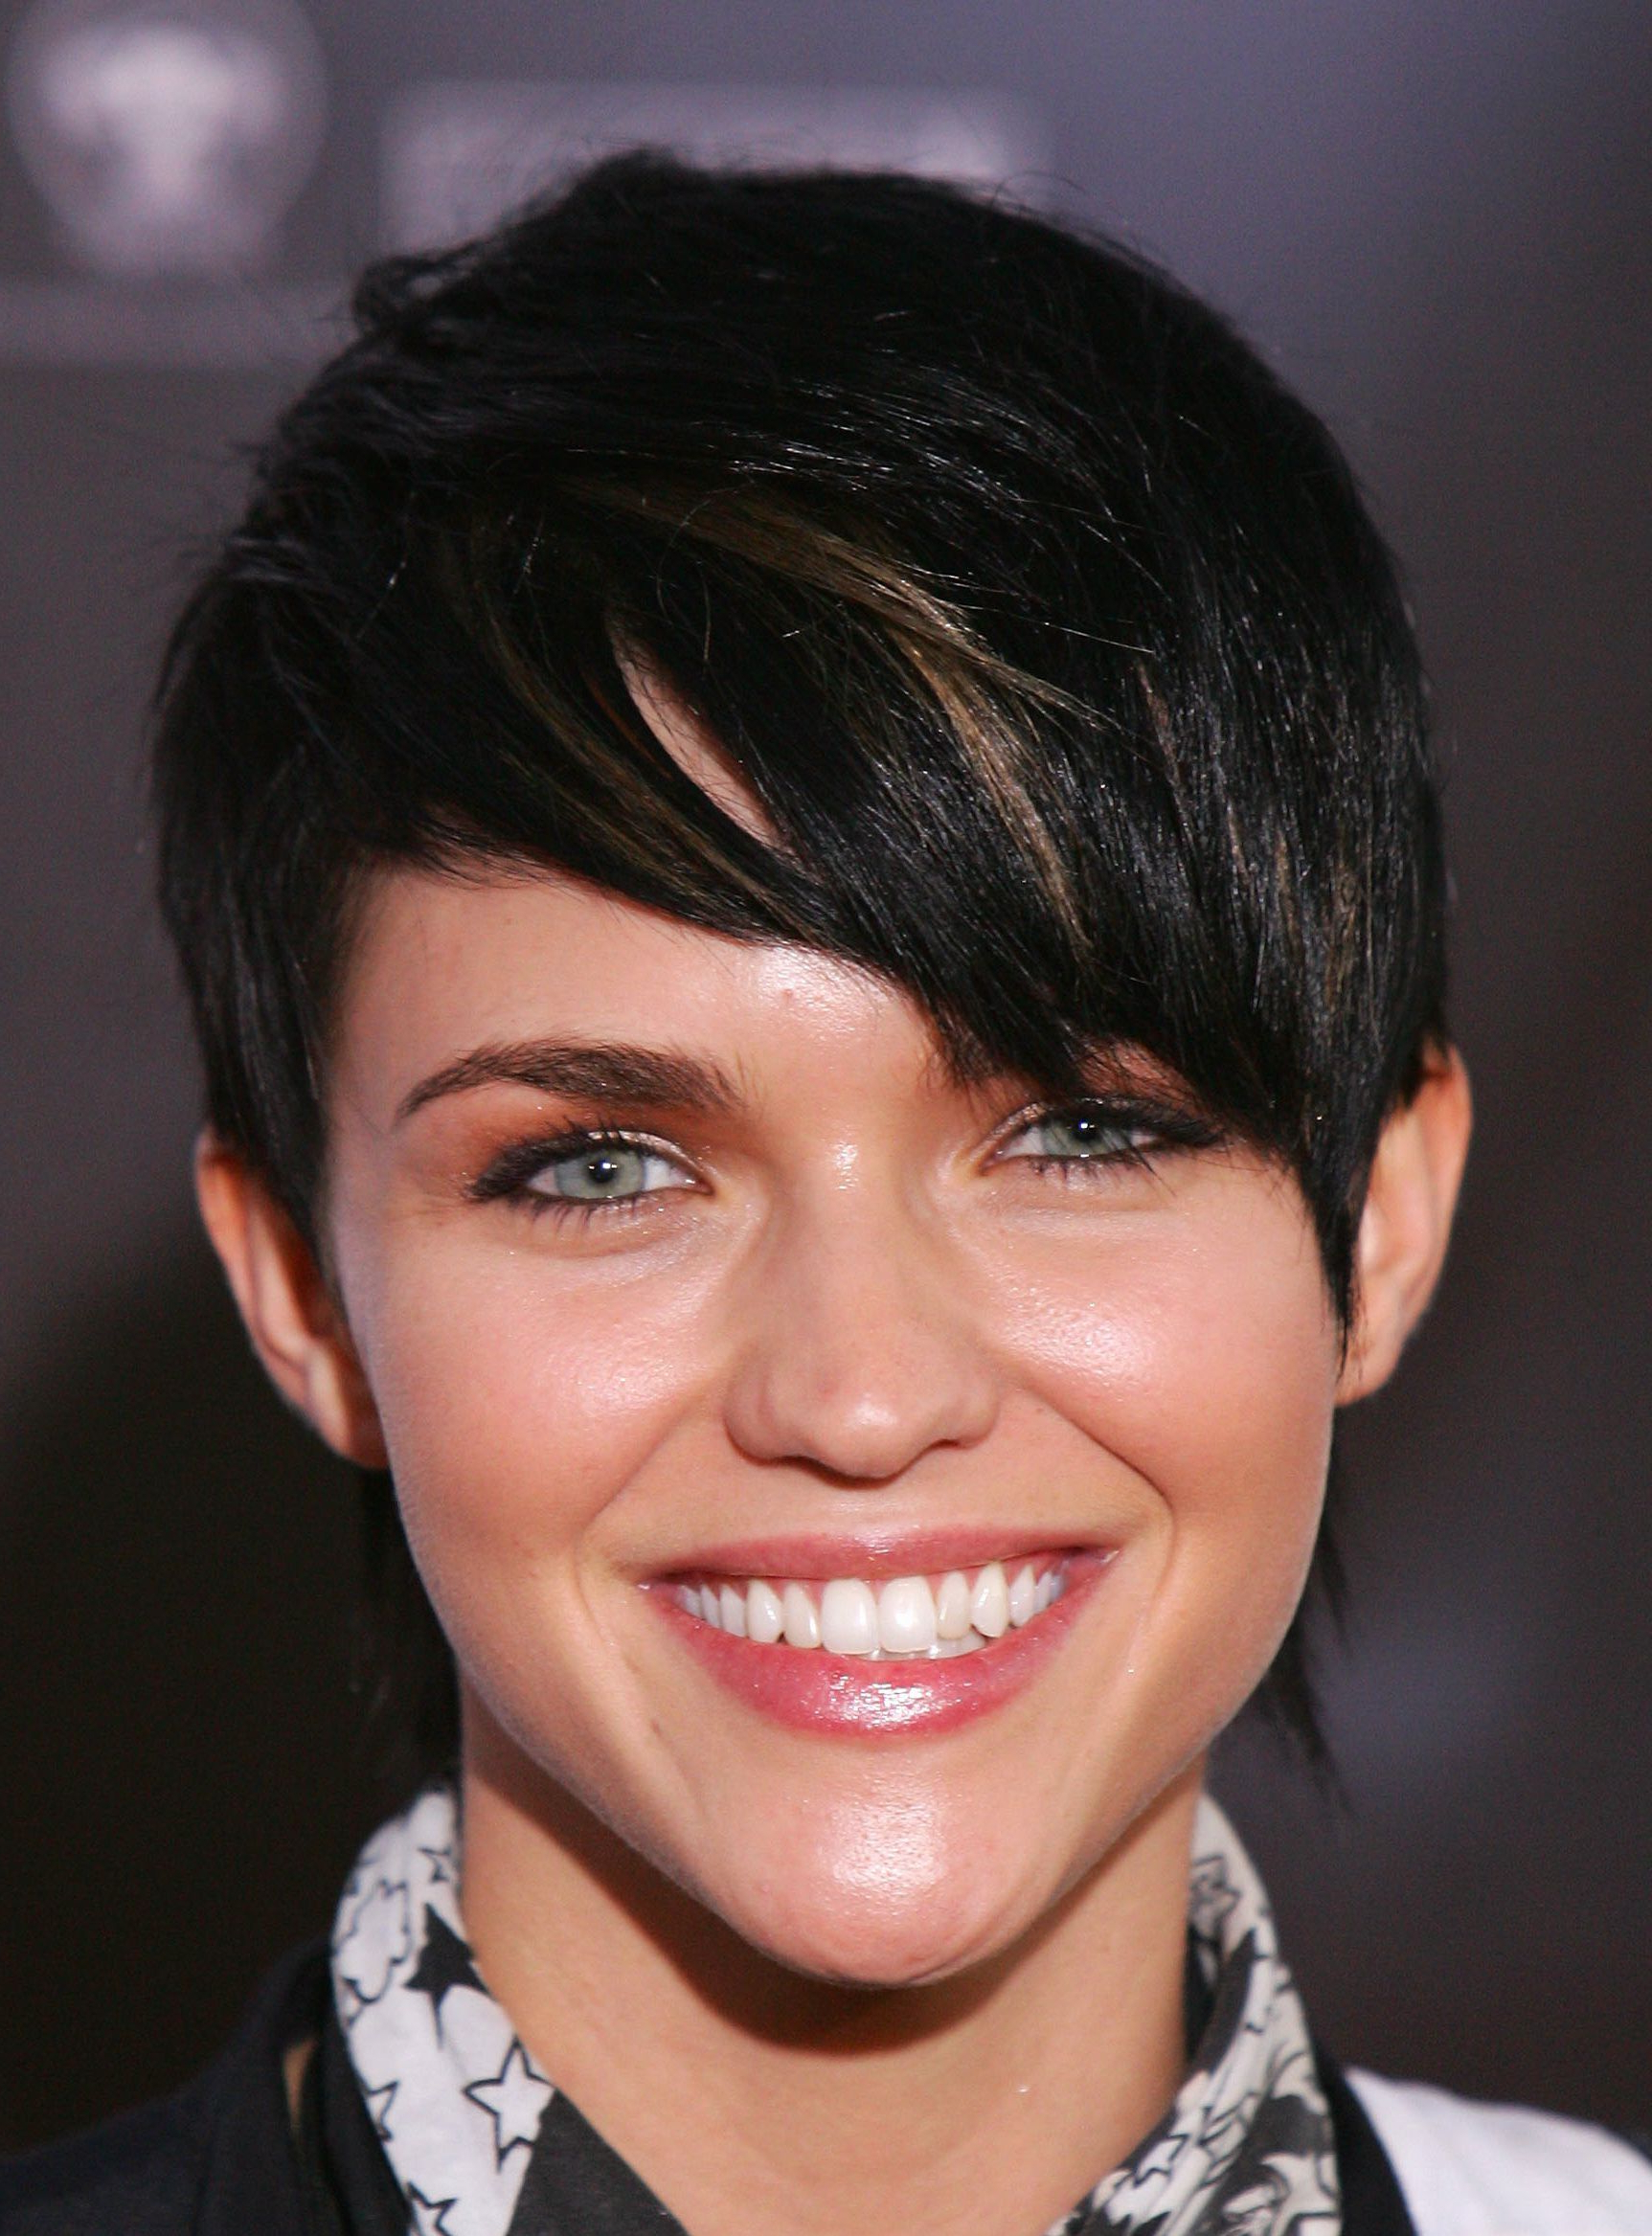 The Best Hairstyles For Women Of Every Body Type Within Most Current Medium Haircuts For Petite Women (View 13 of 20)